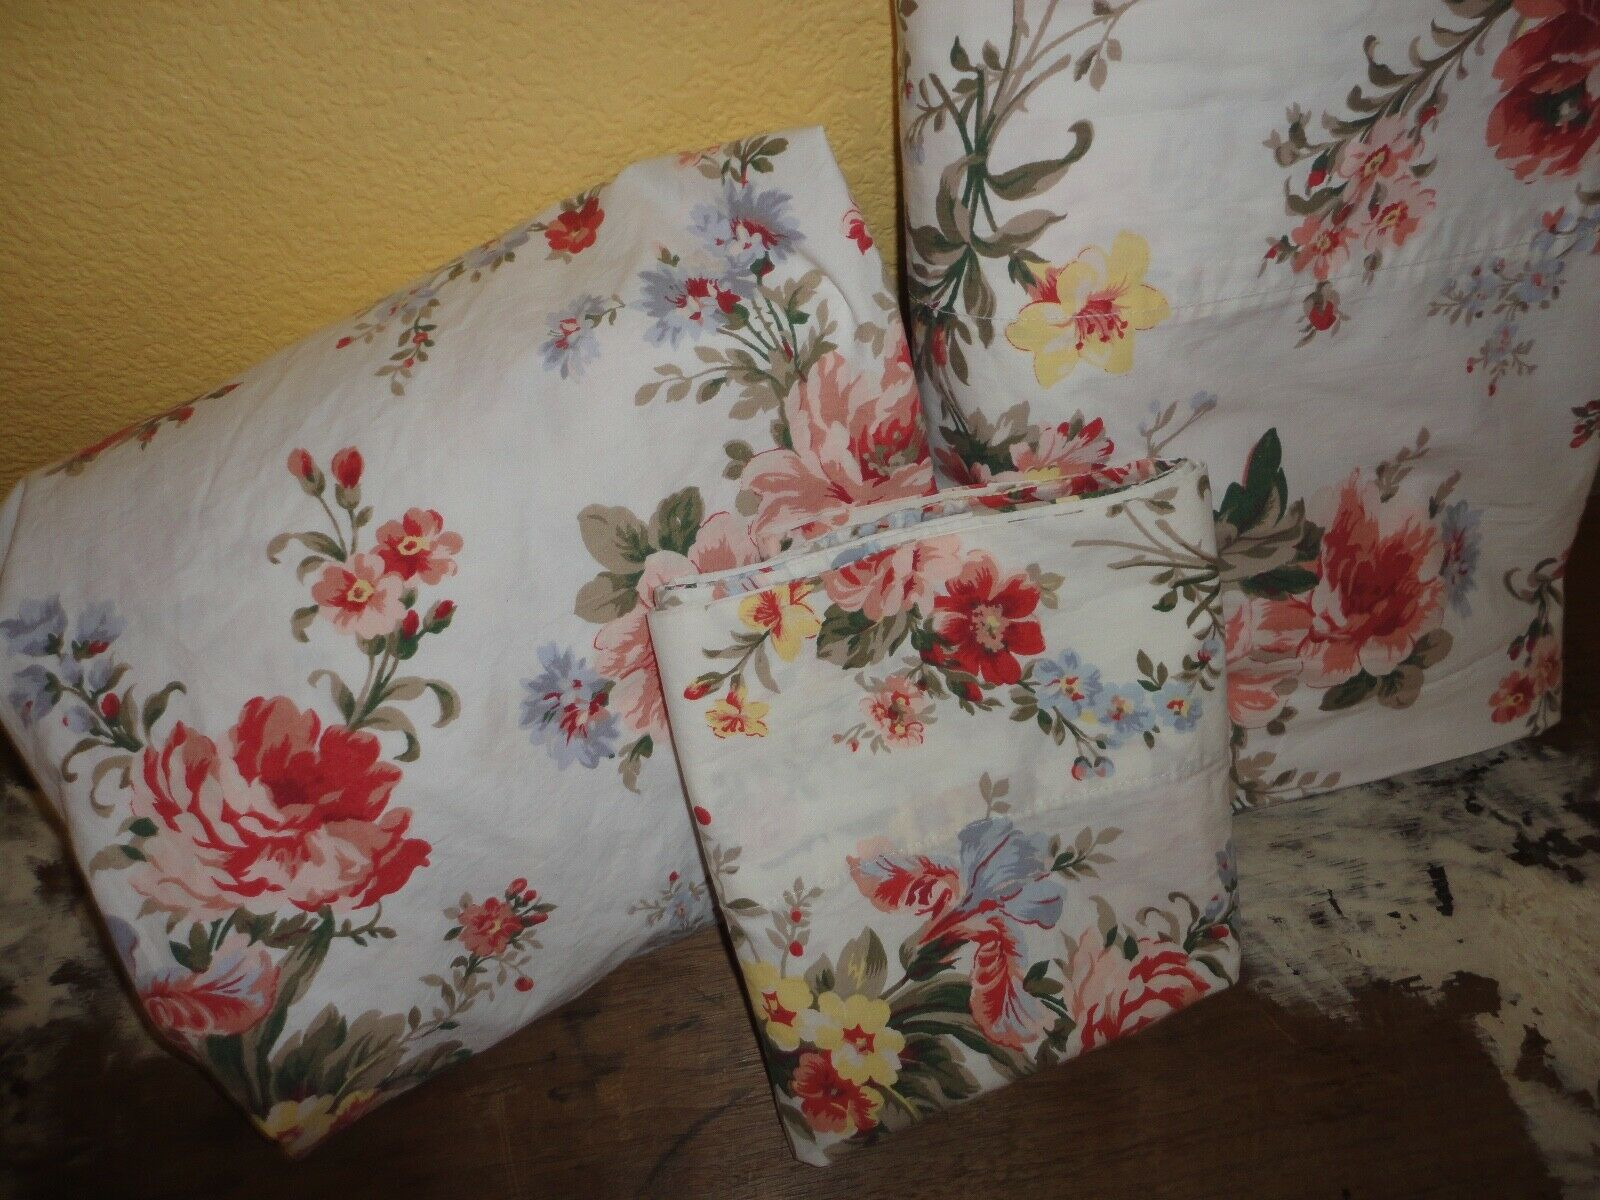 RALPH LAUREN PETTICOAT FLORAL CORAL CINNAMON (3PC) TWIN FITTED SHEET SET